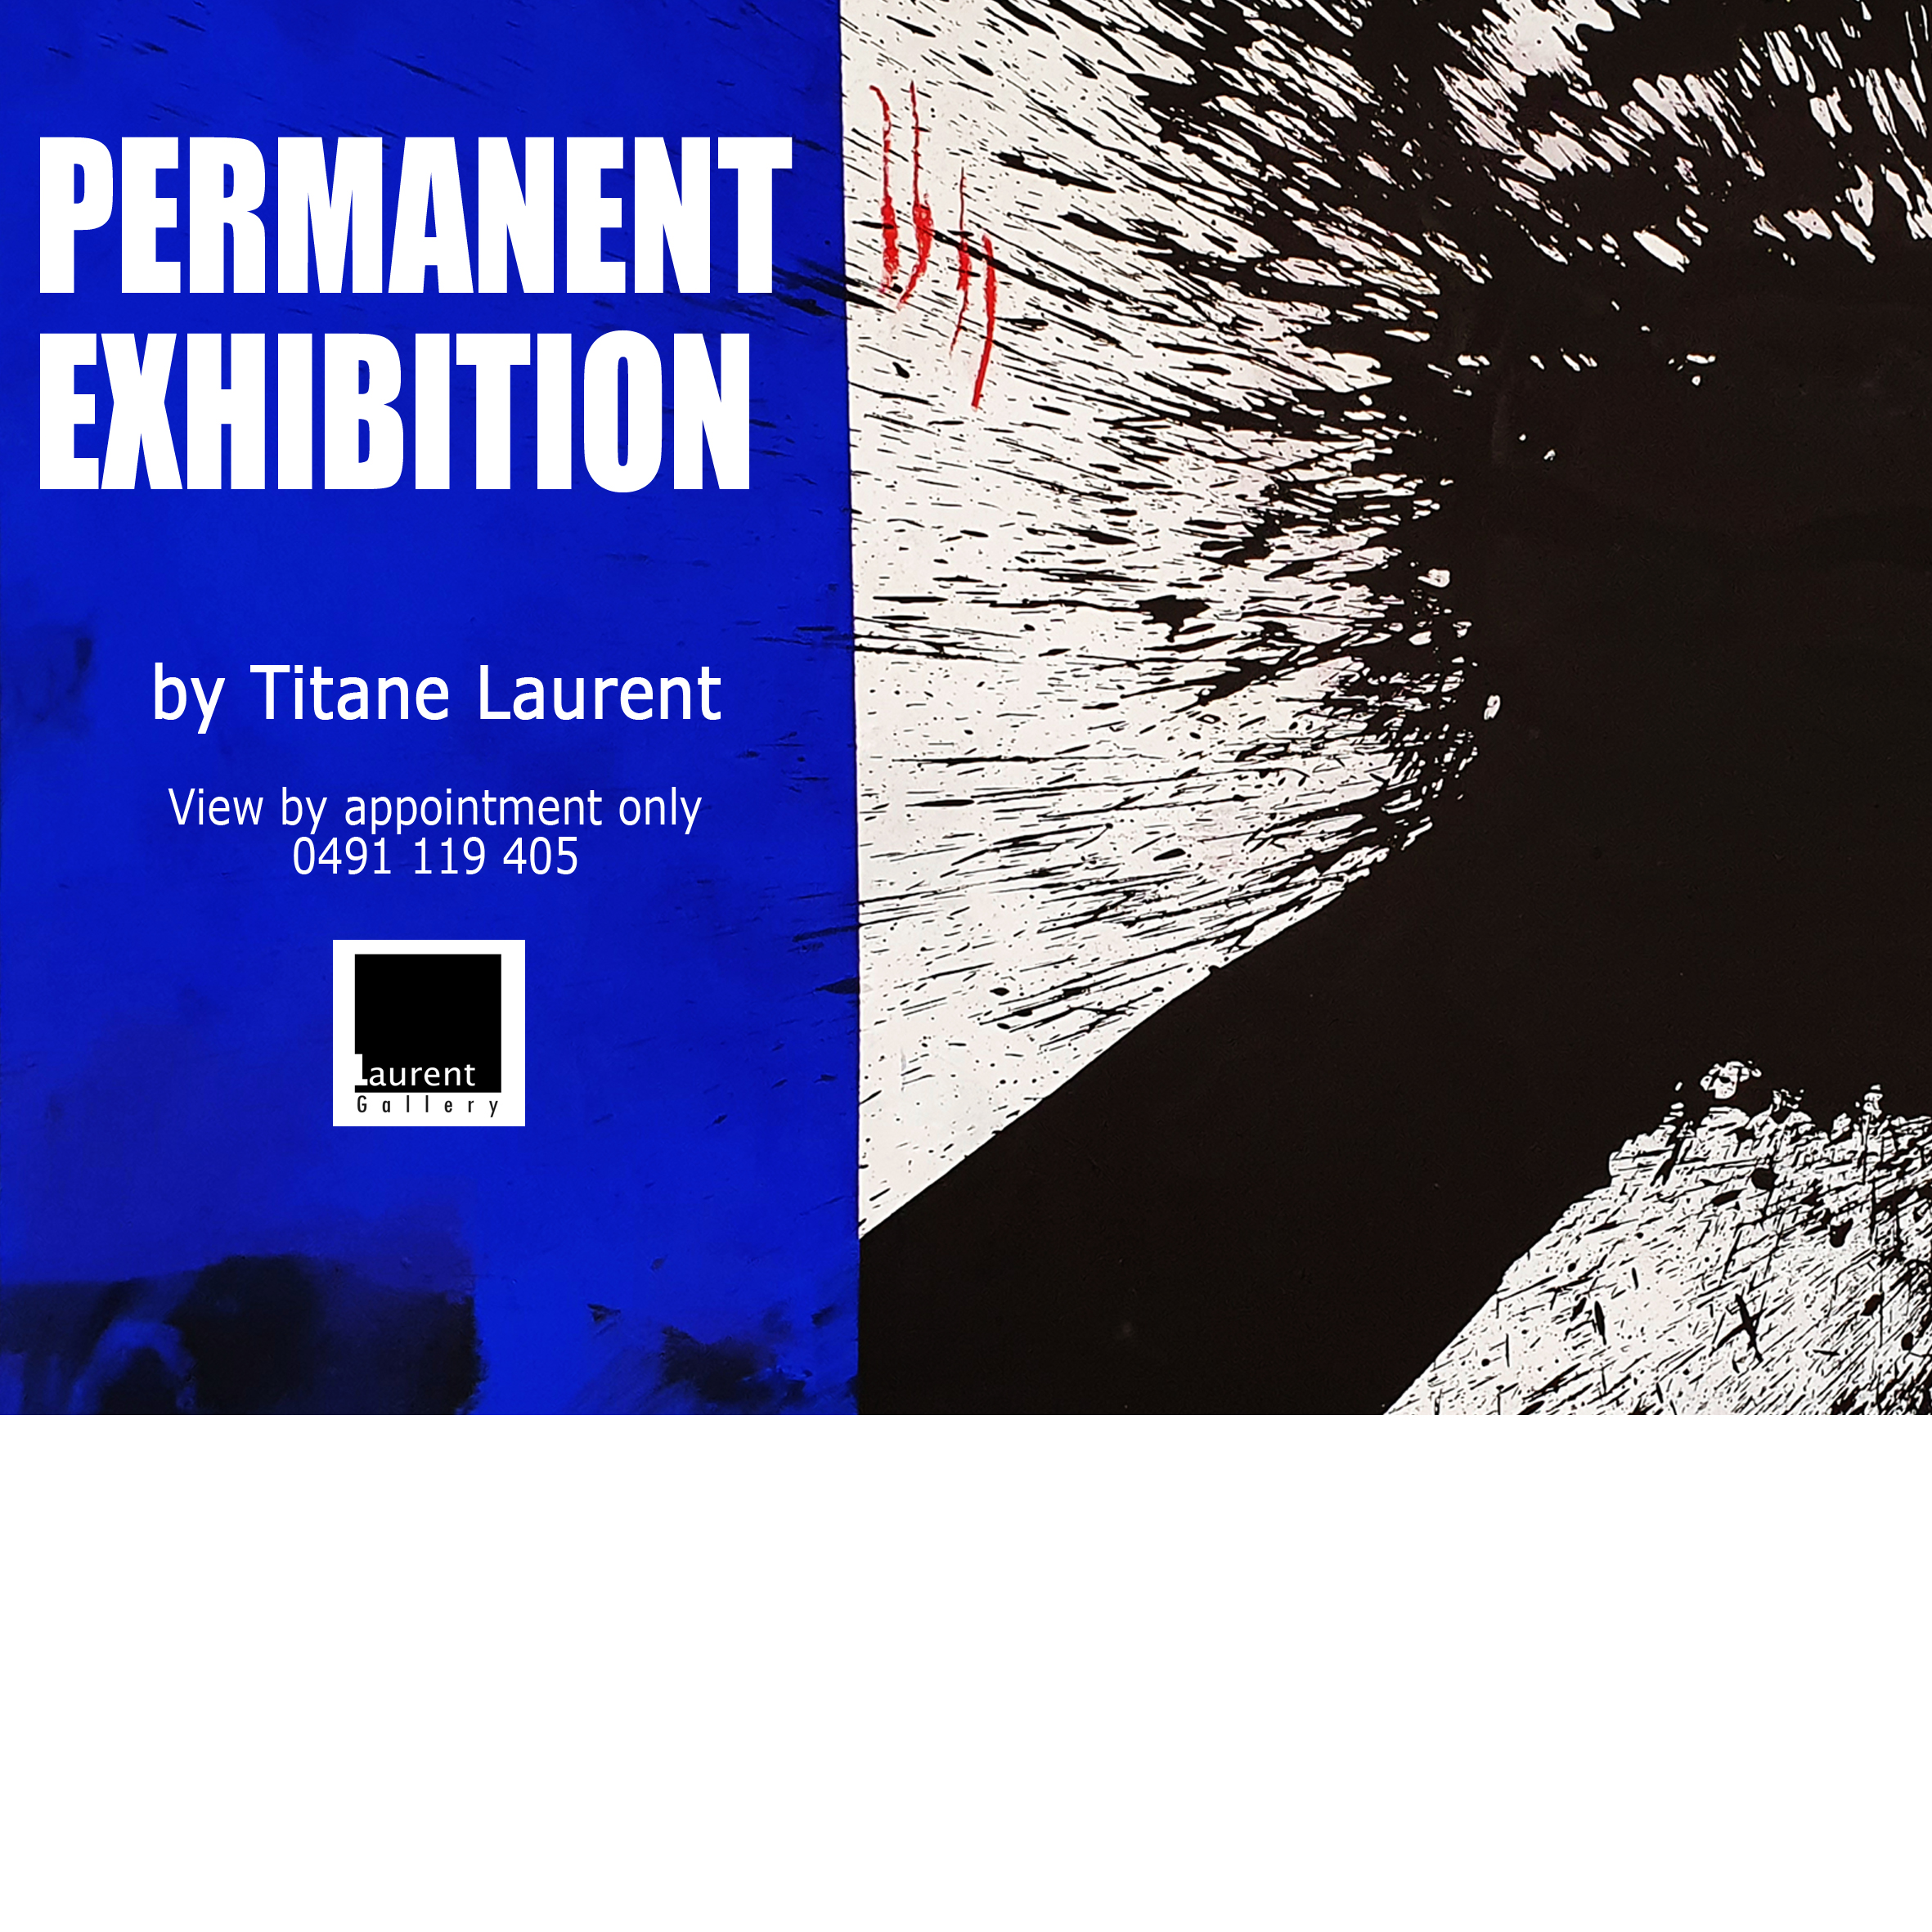 Permanent Exhibition 2020